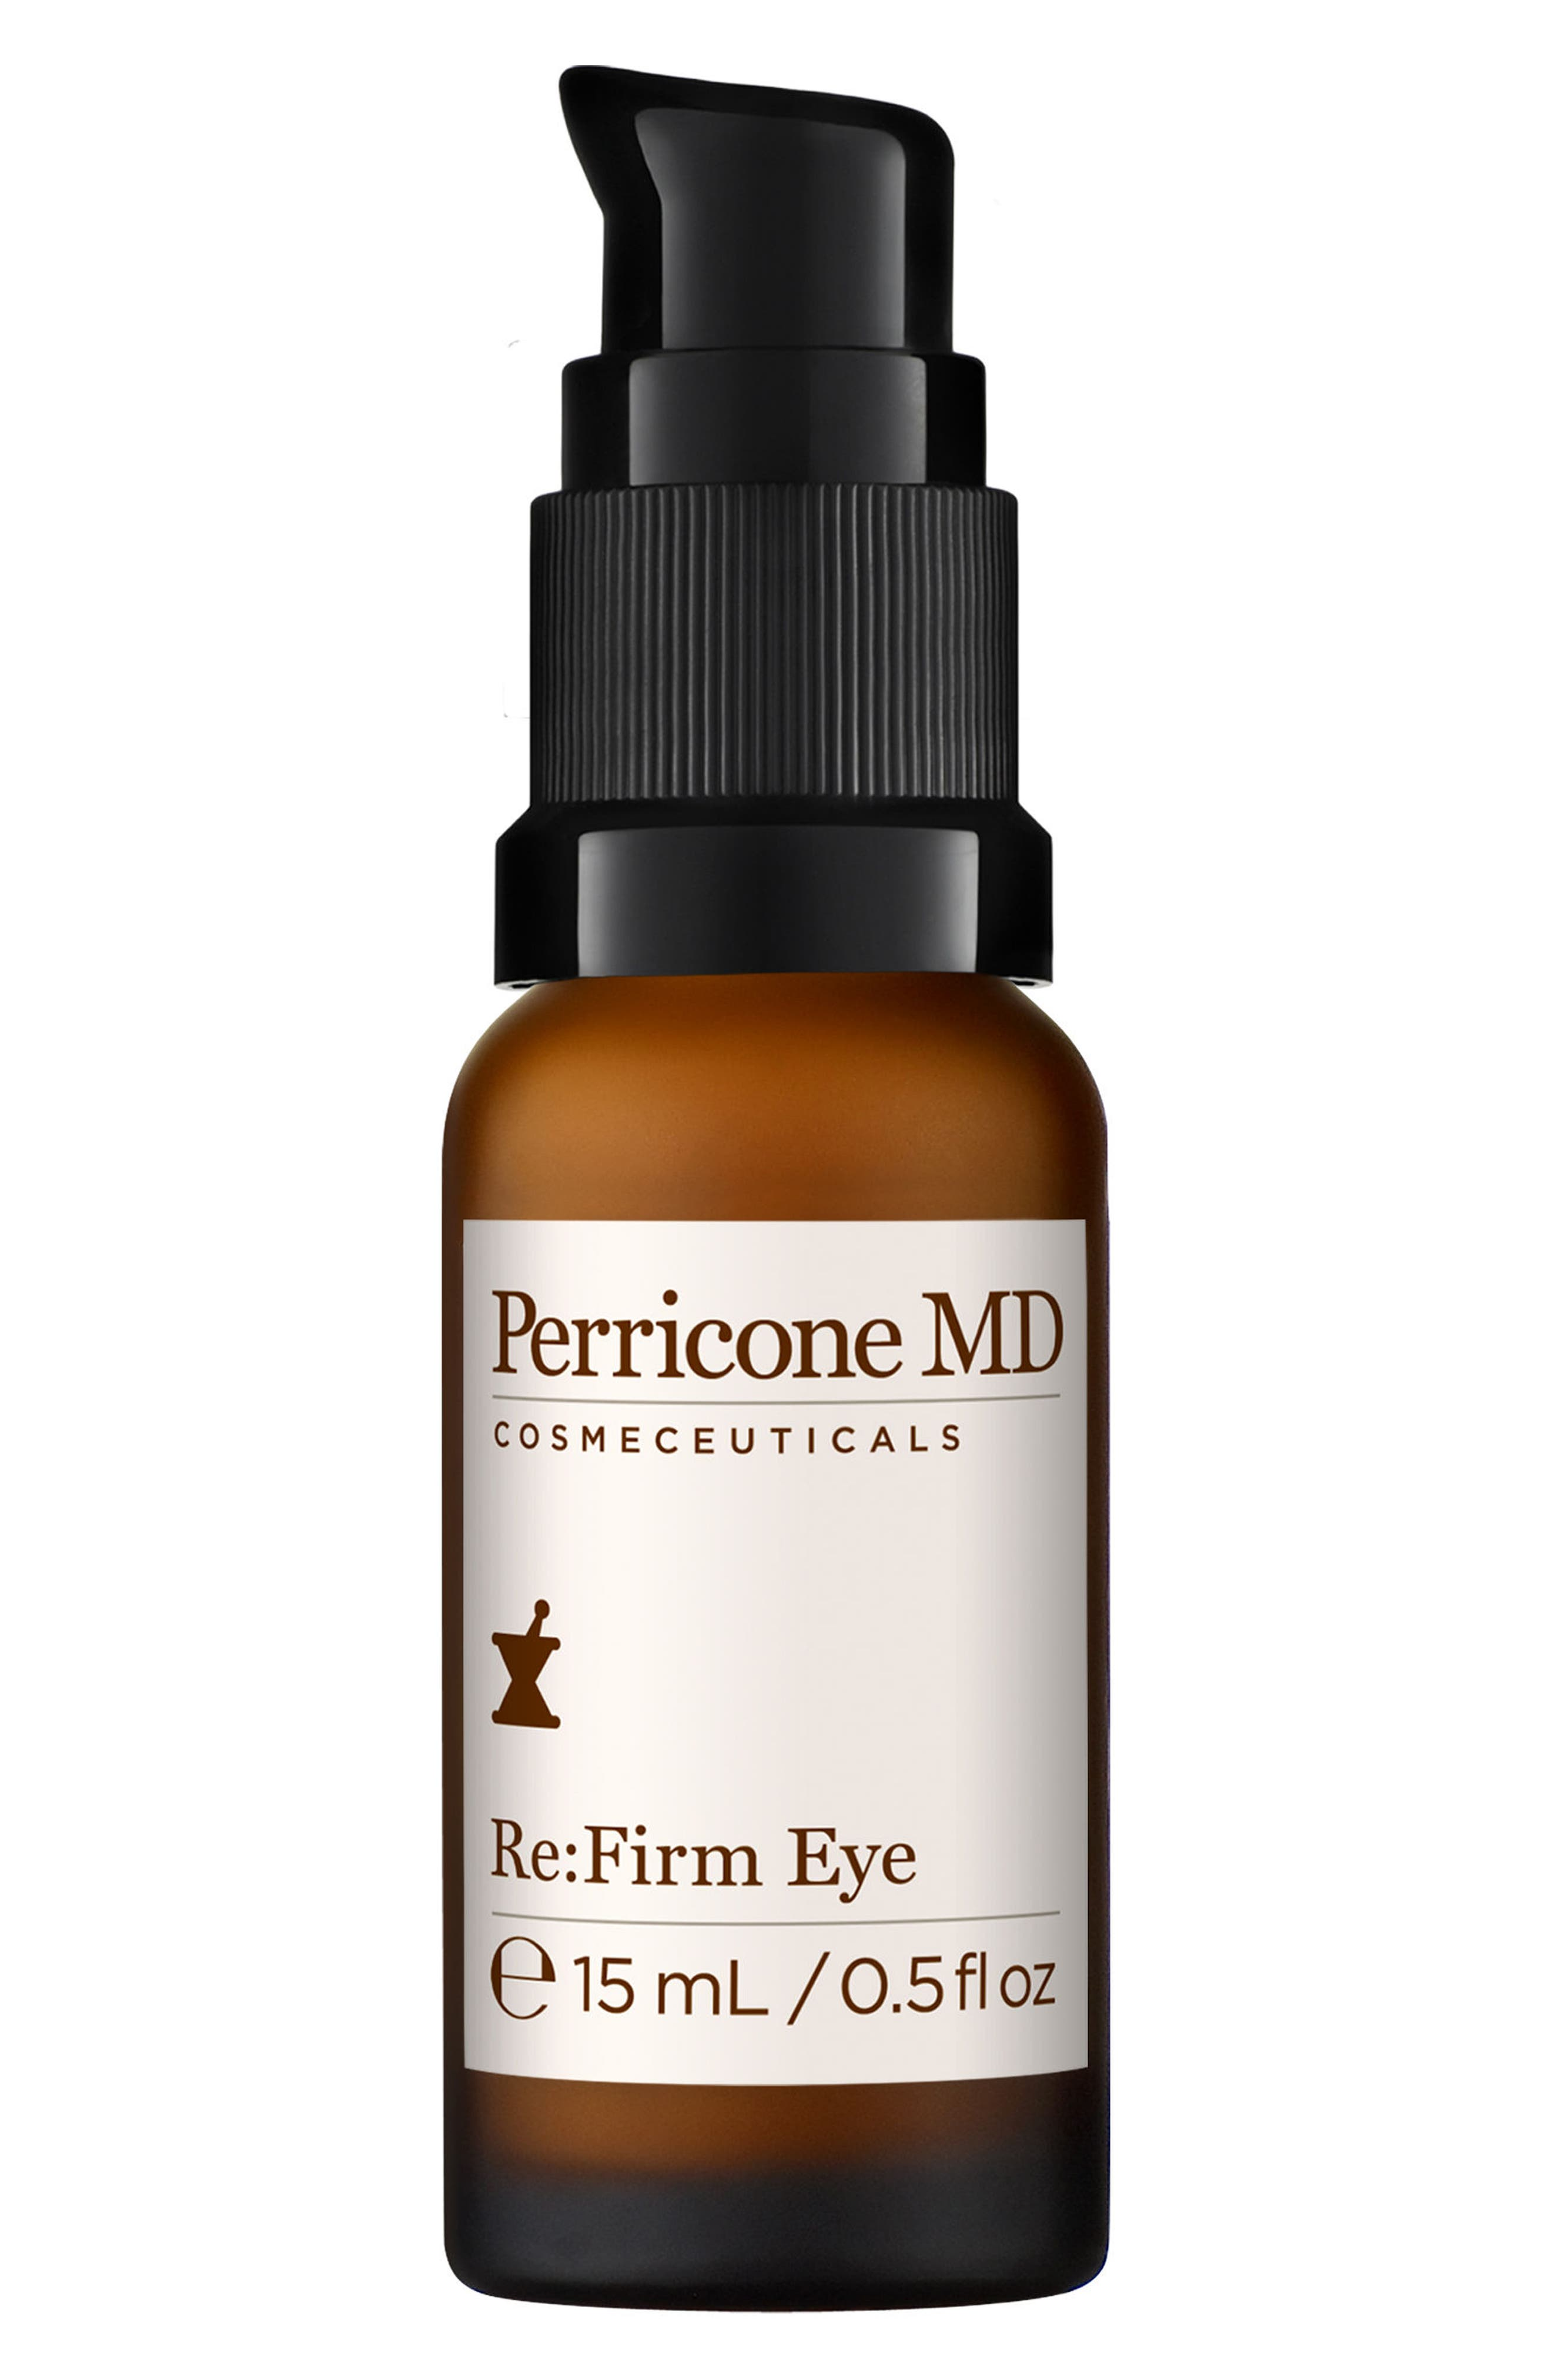 Perricone MD Re:Firm Eye Surface Recovery Complex